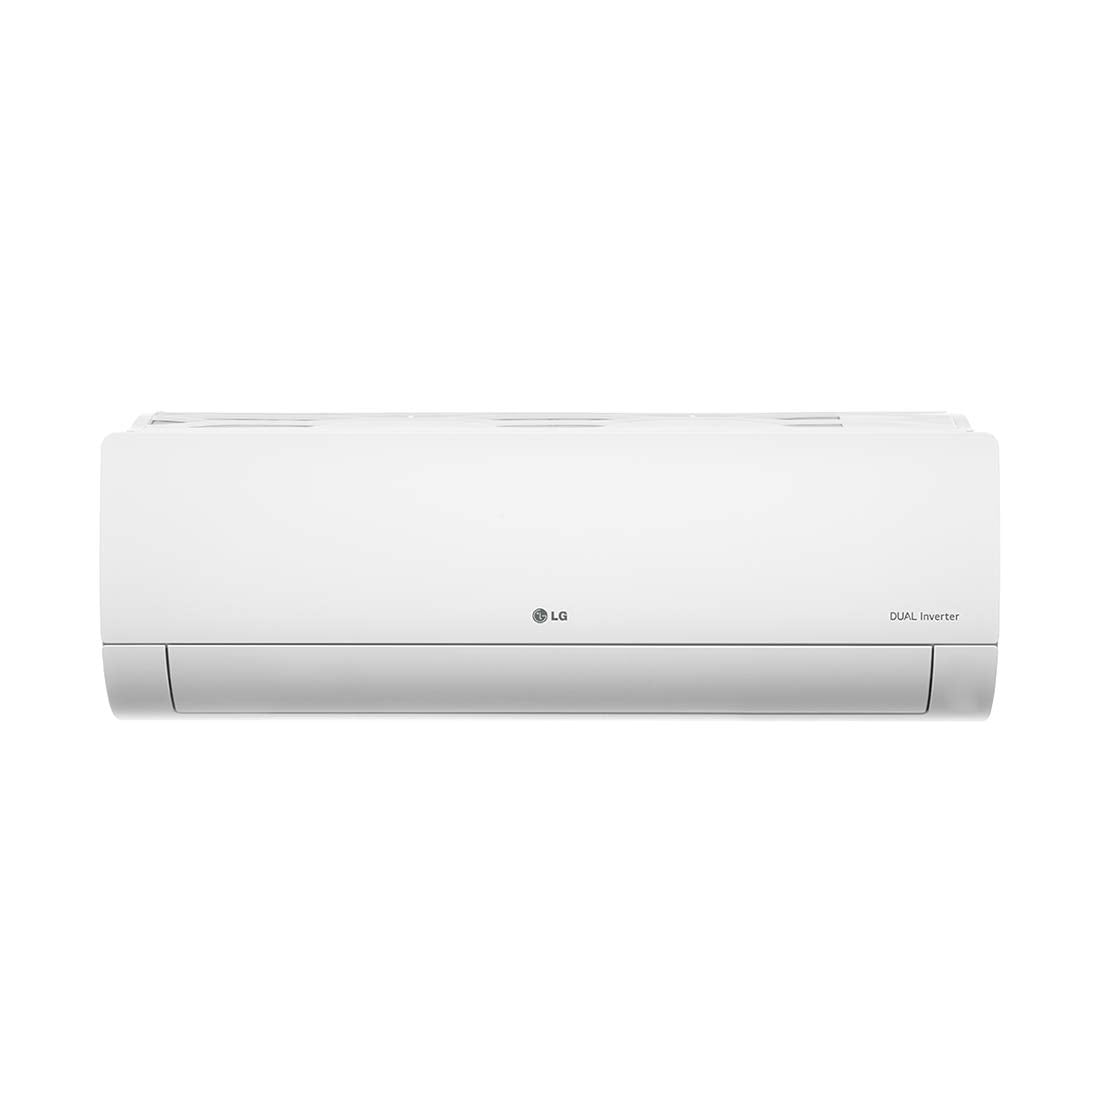 Best Dual Inverter Split Ac 1.5 Ton 5 Star India